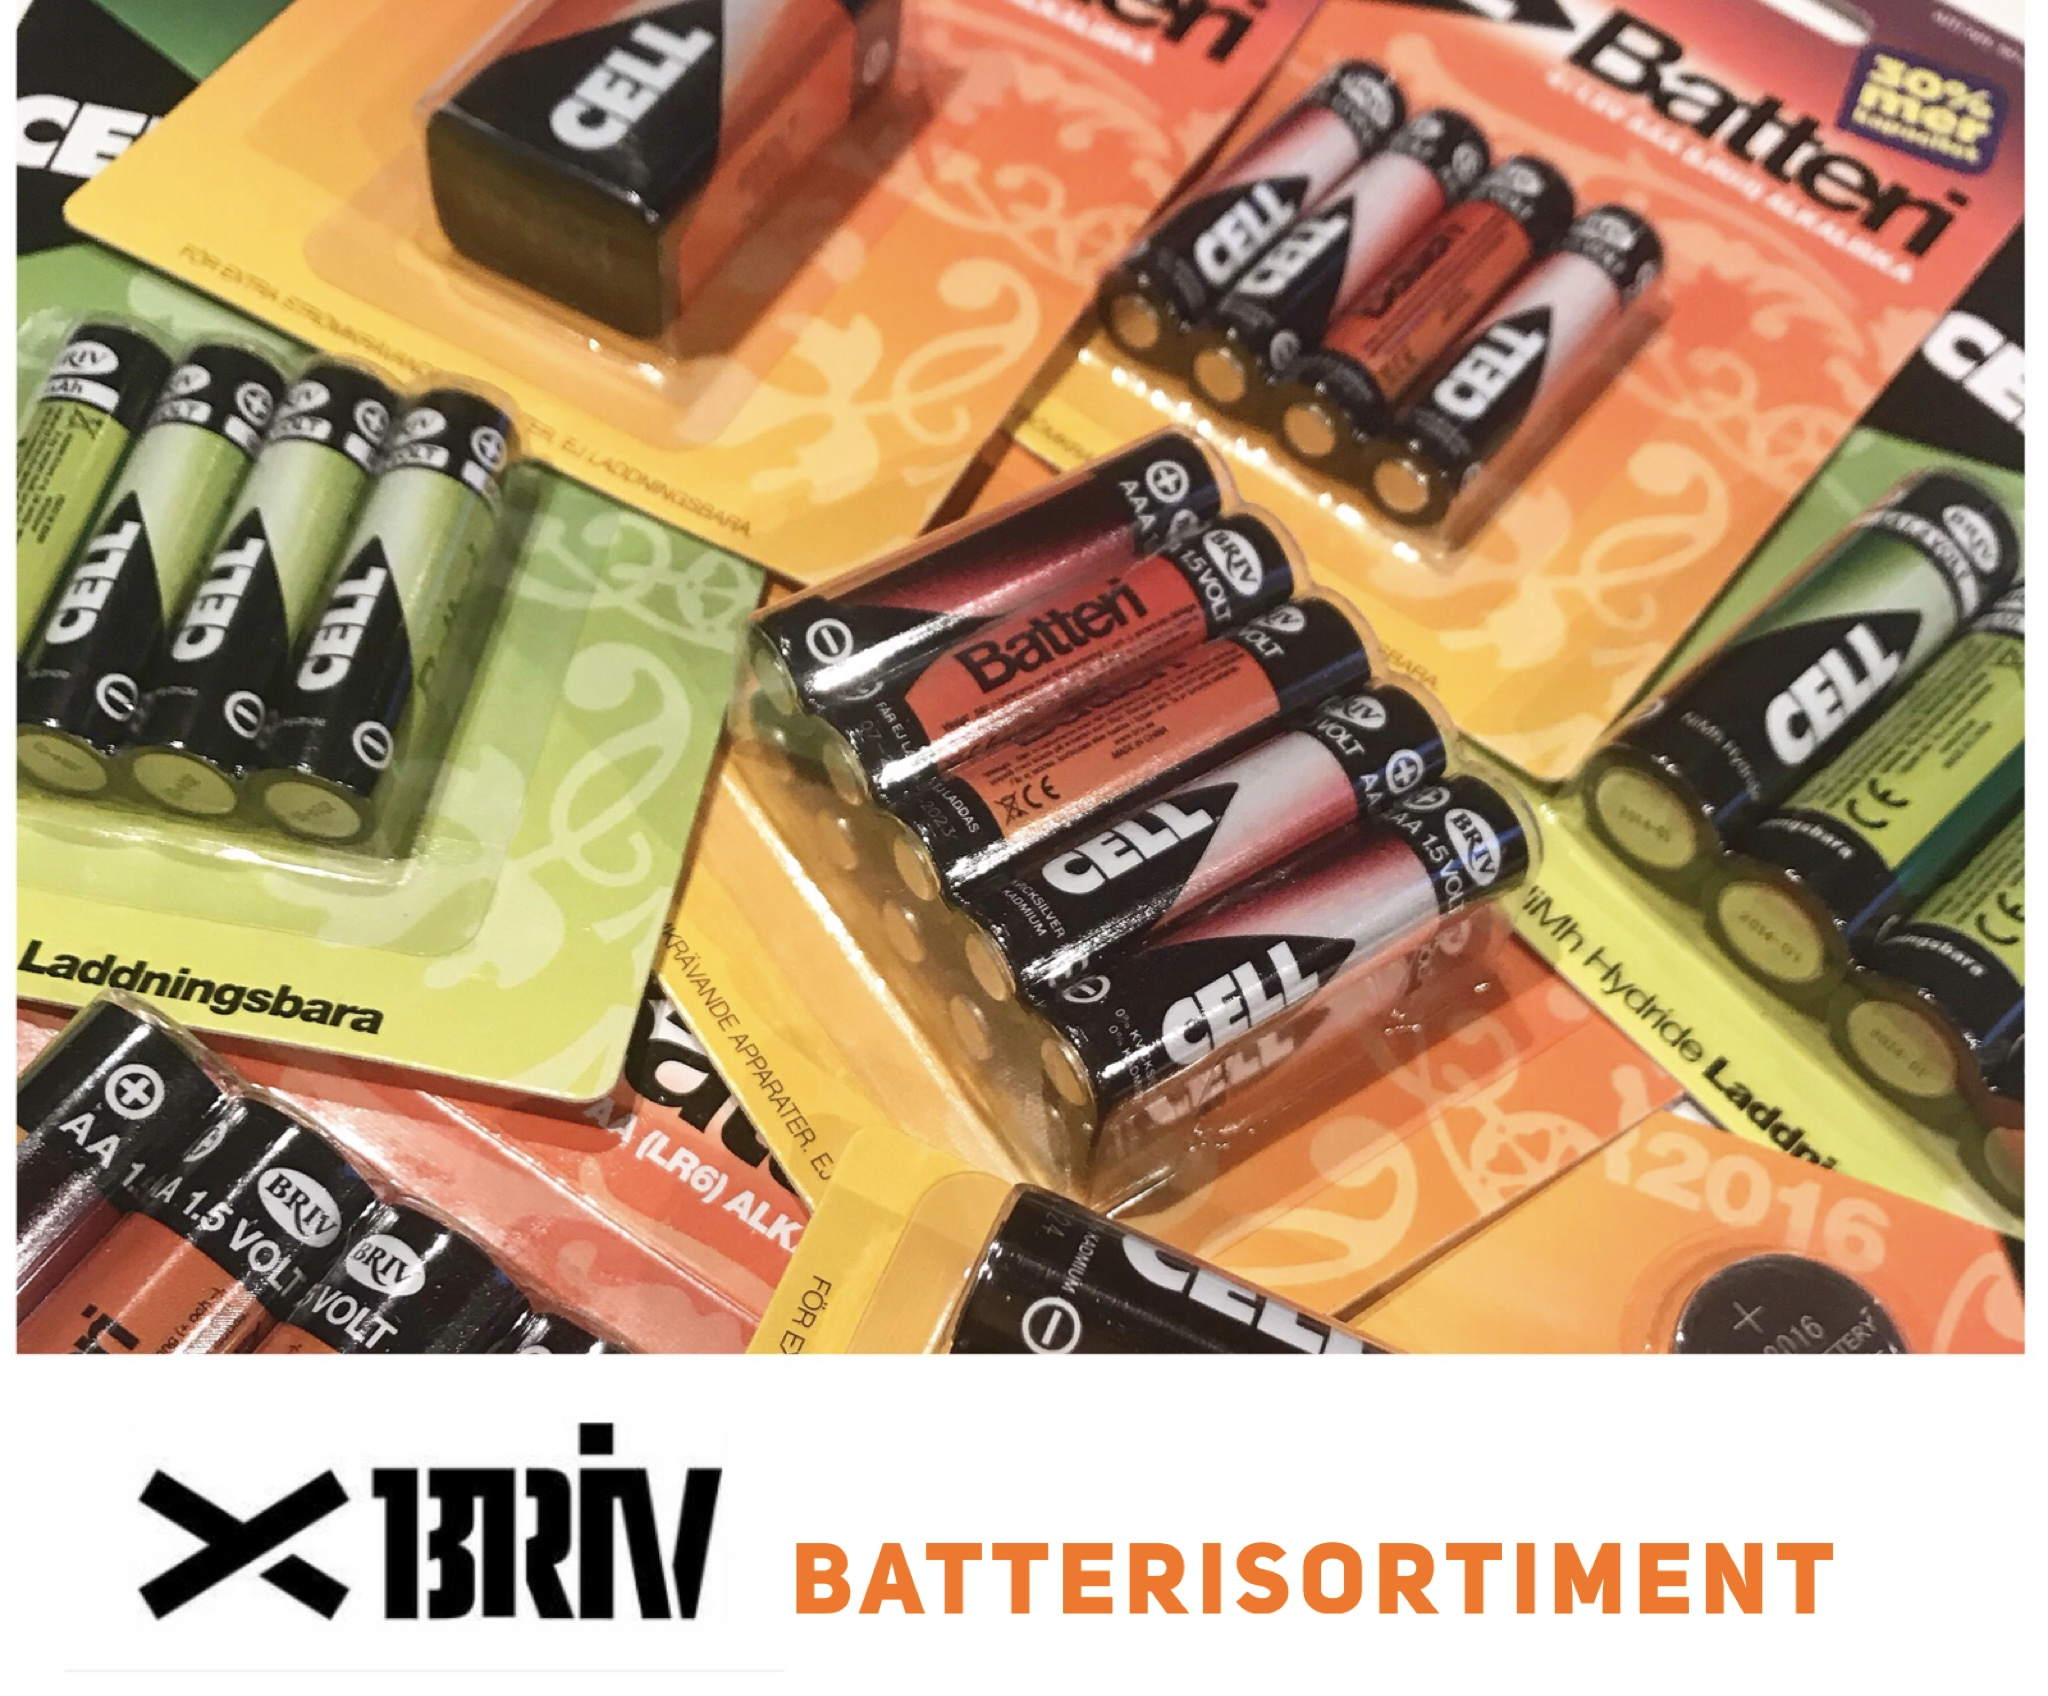 Briv batterisortiment